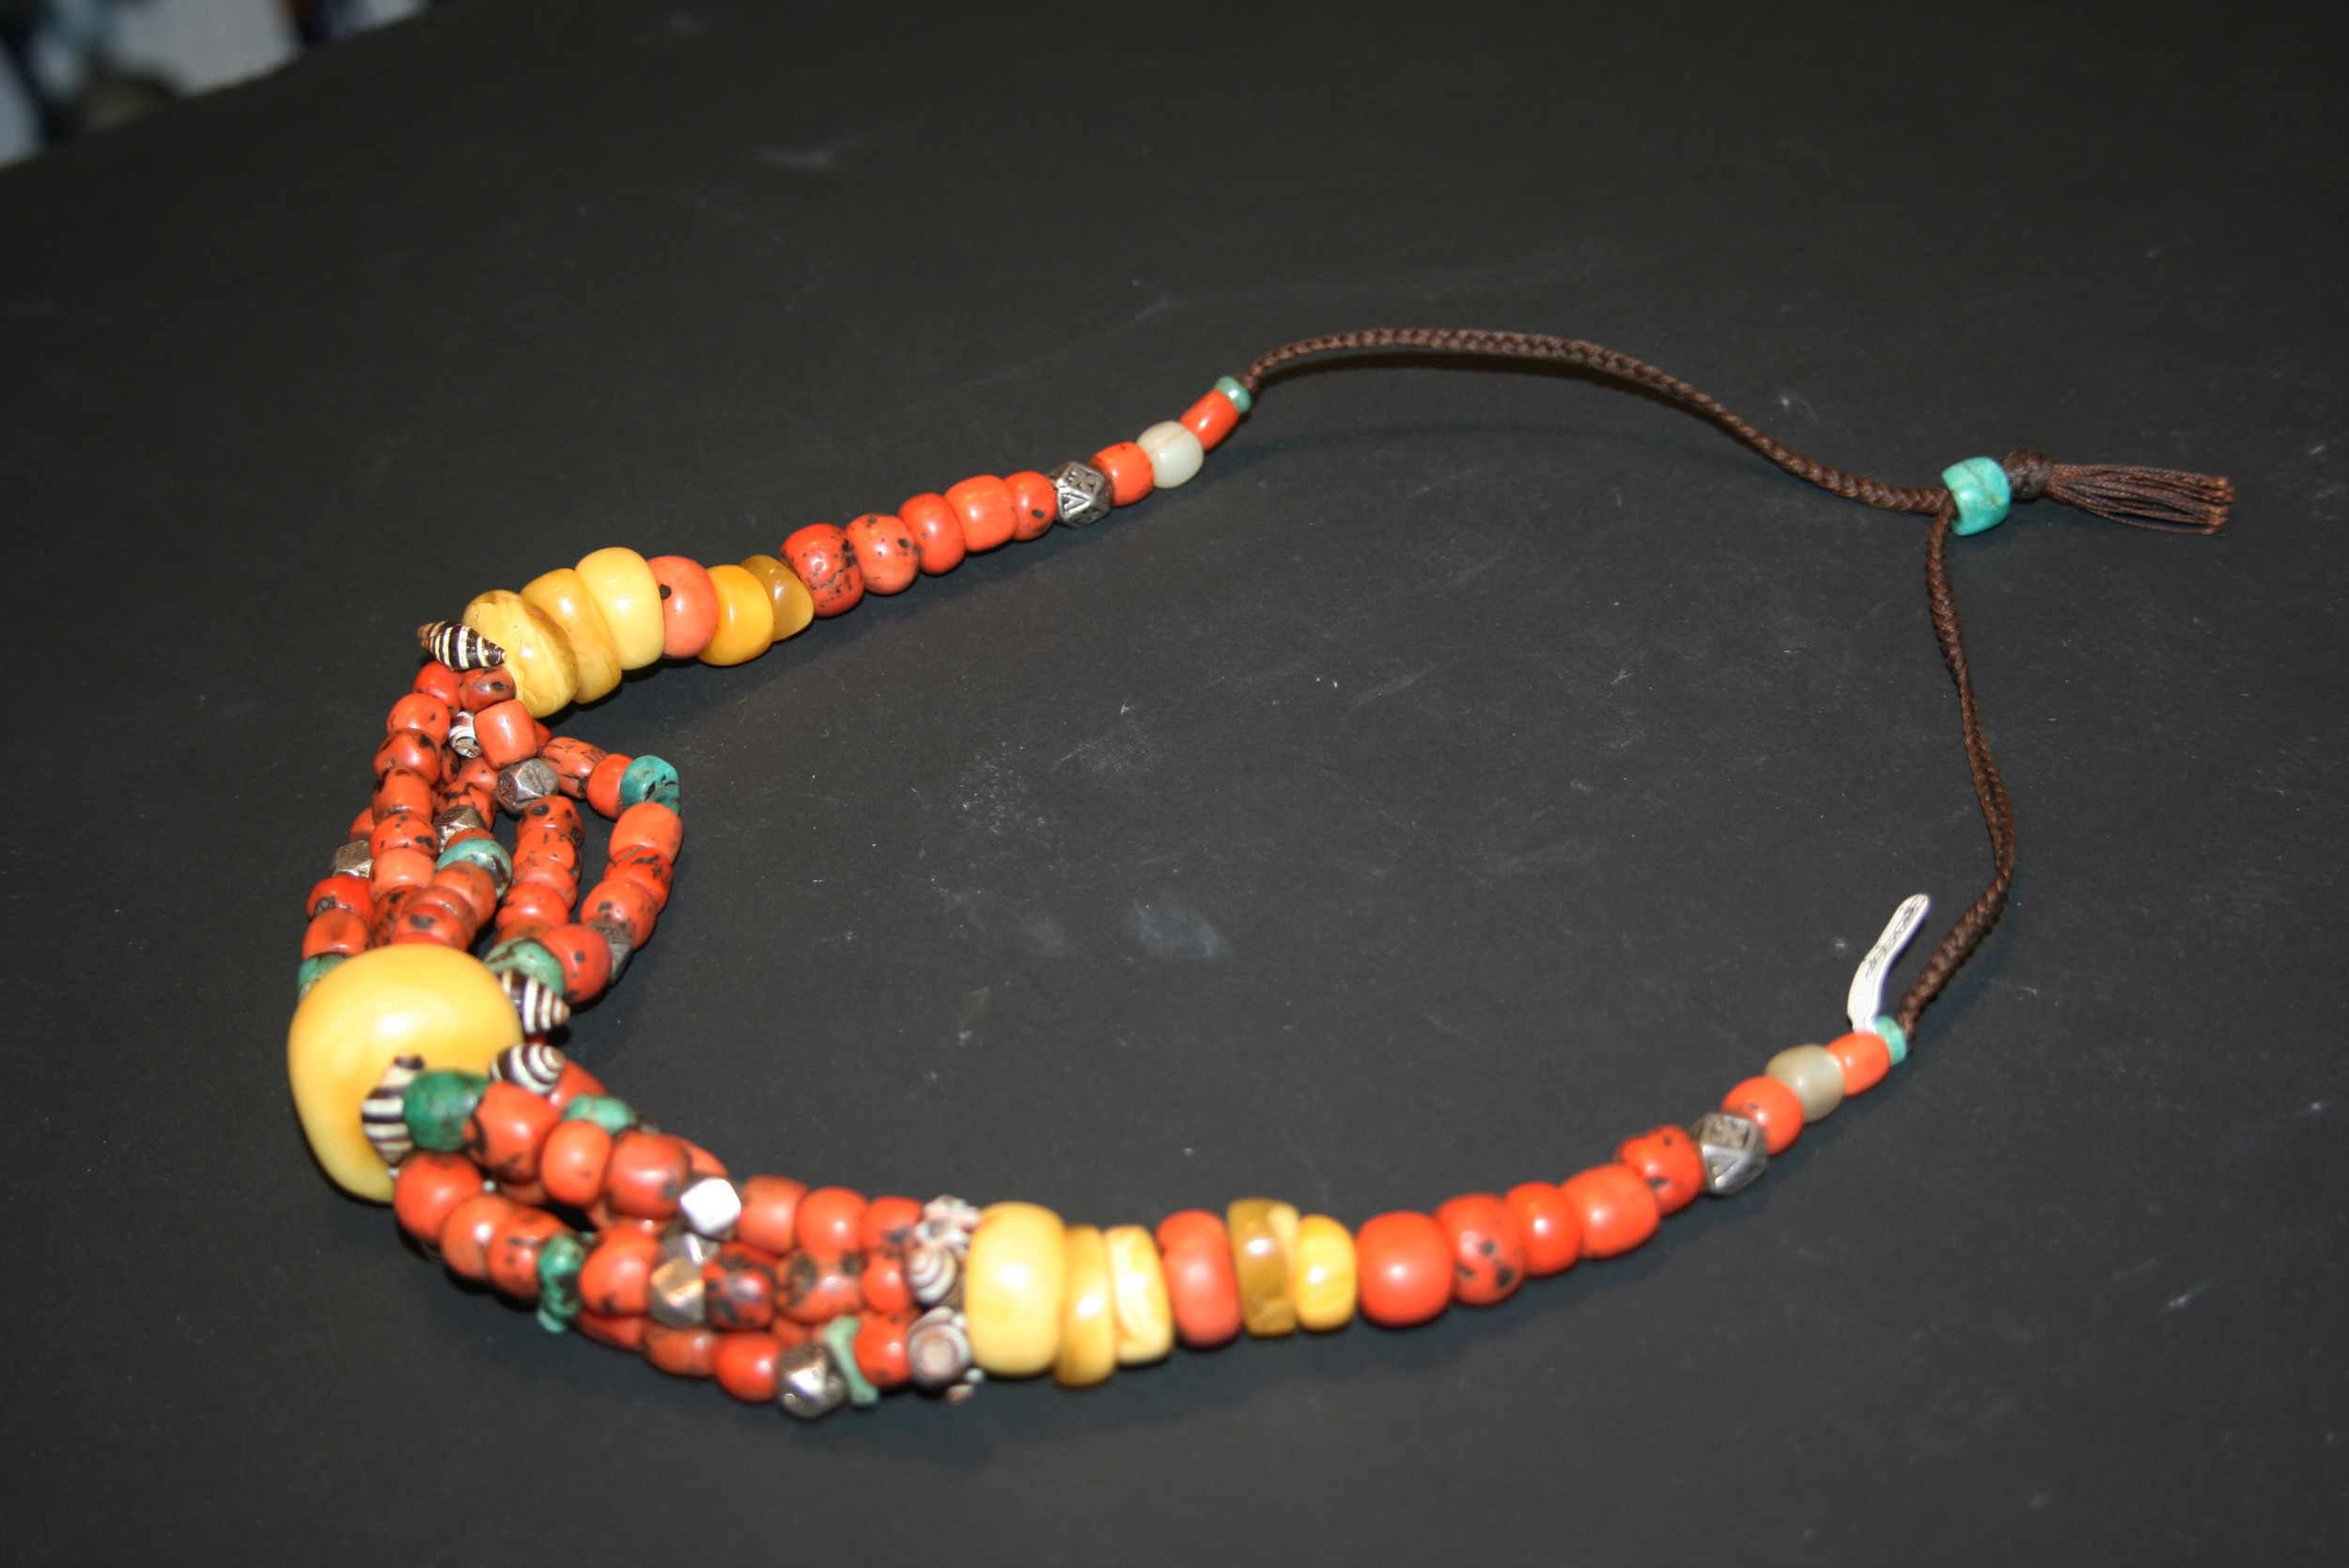 coral mcarnott and berber of tangier jewelry silver discovering traditional in morocco amazonite a textiles ammonite the credit made buckettripper necklace